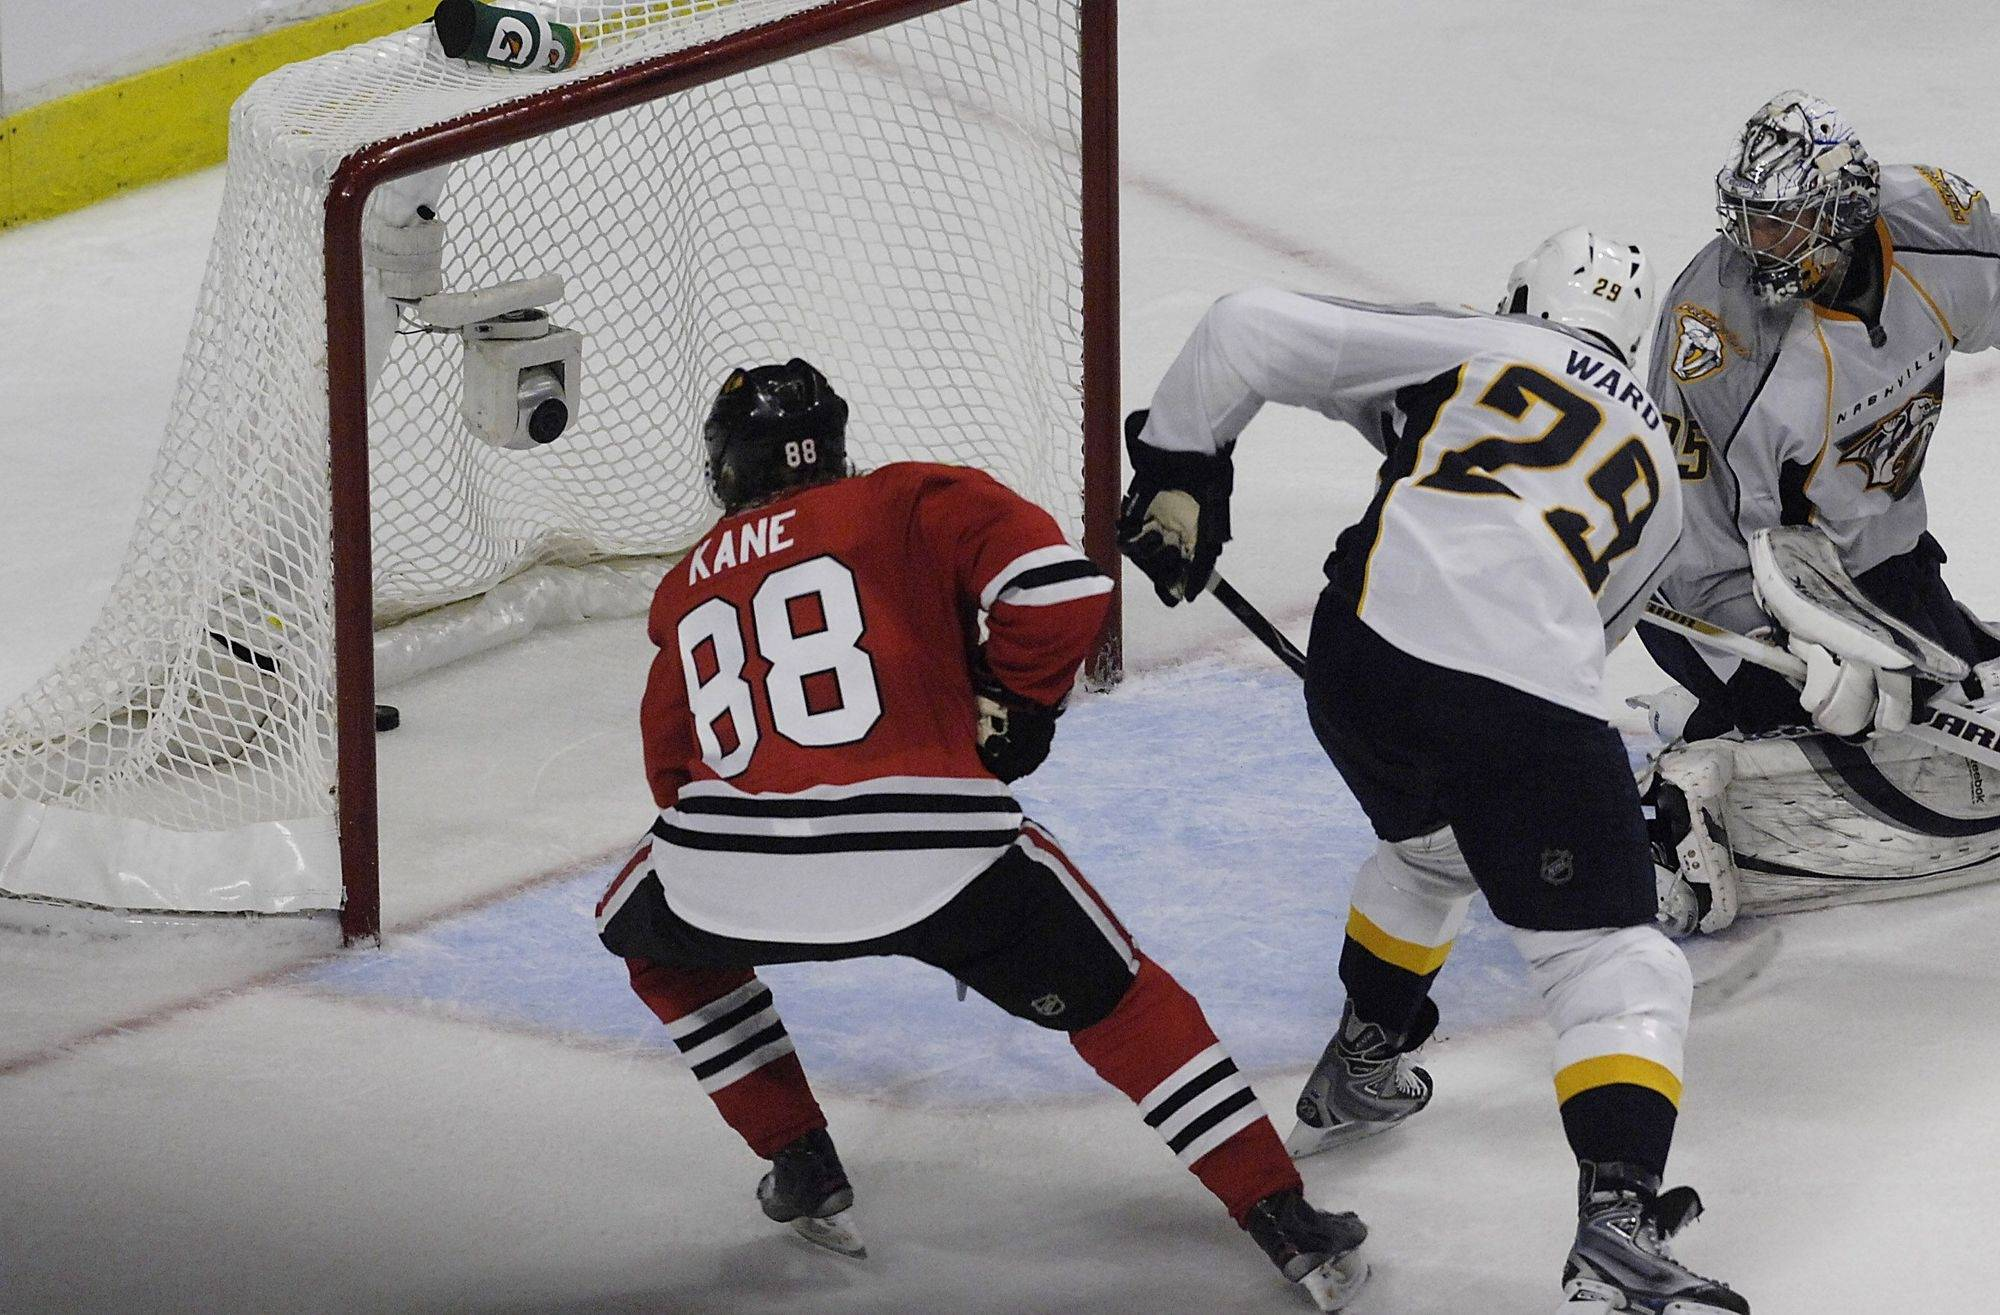 Chicago Blackhawks right wing Patrick Kane ties the game at 4 with 13 seconds remaining in regulation Saturday at the United Center in Game 5 of the first-round Stanley Cup playoff series.